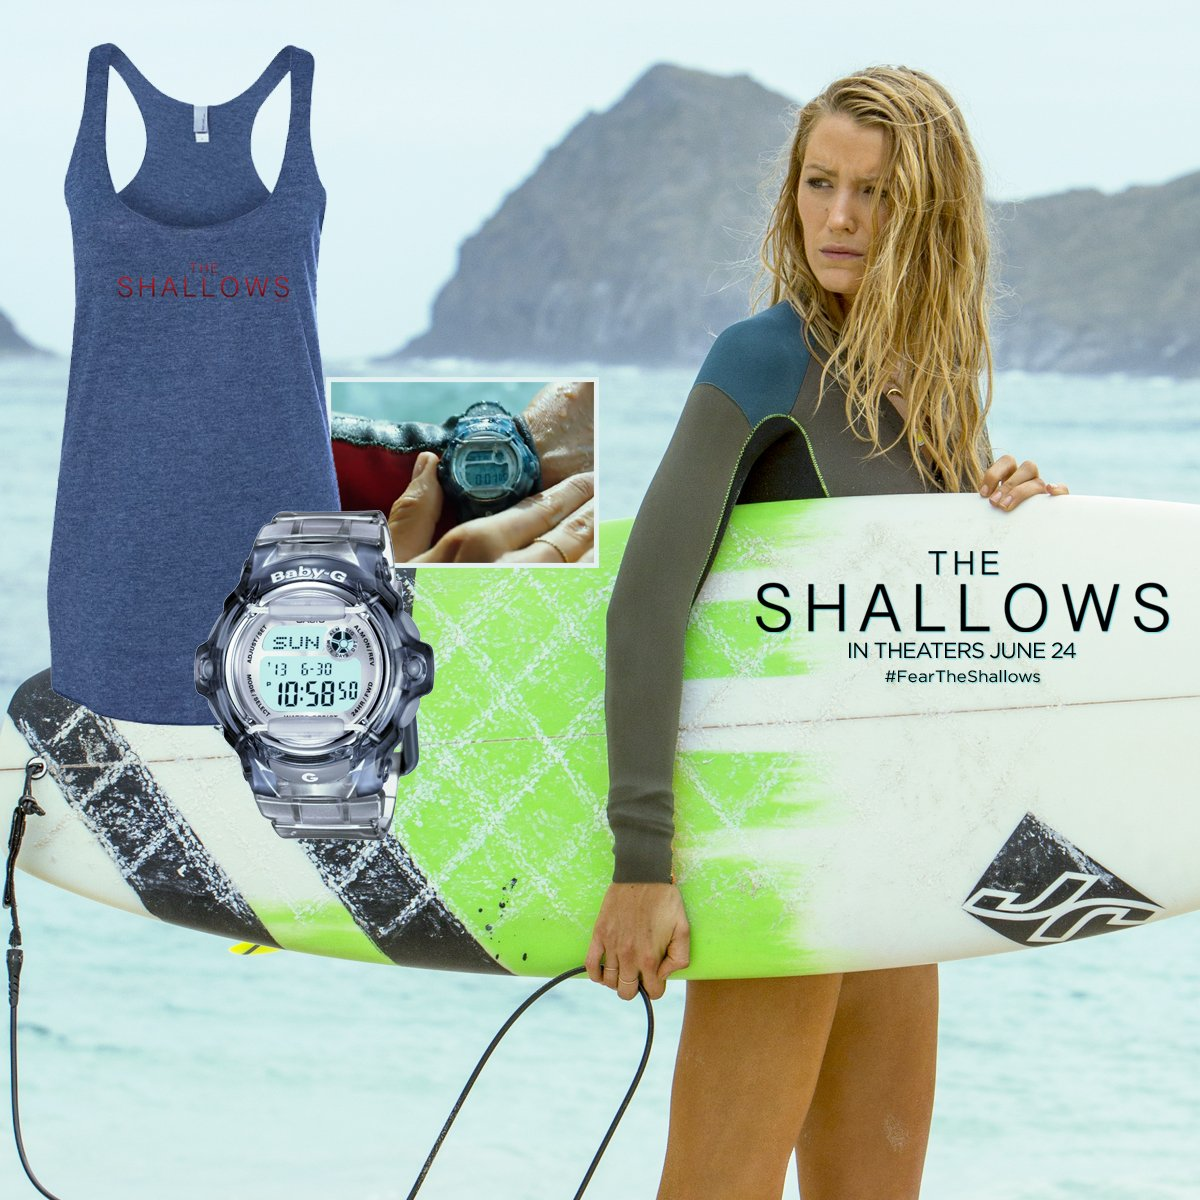 FOLLOW & RT for a chance to #WIN this exclusive @ShallowsMovie prize pack! Good luck! #FearTheShallows https://t.co/KQowPi7XVX